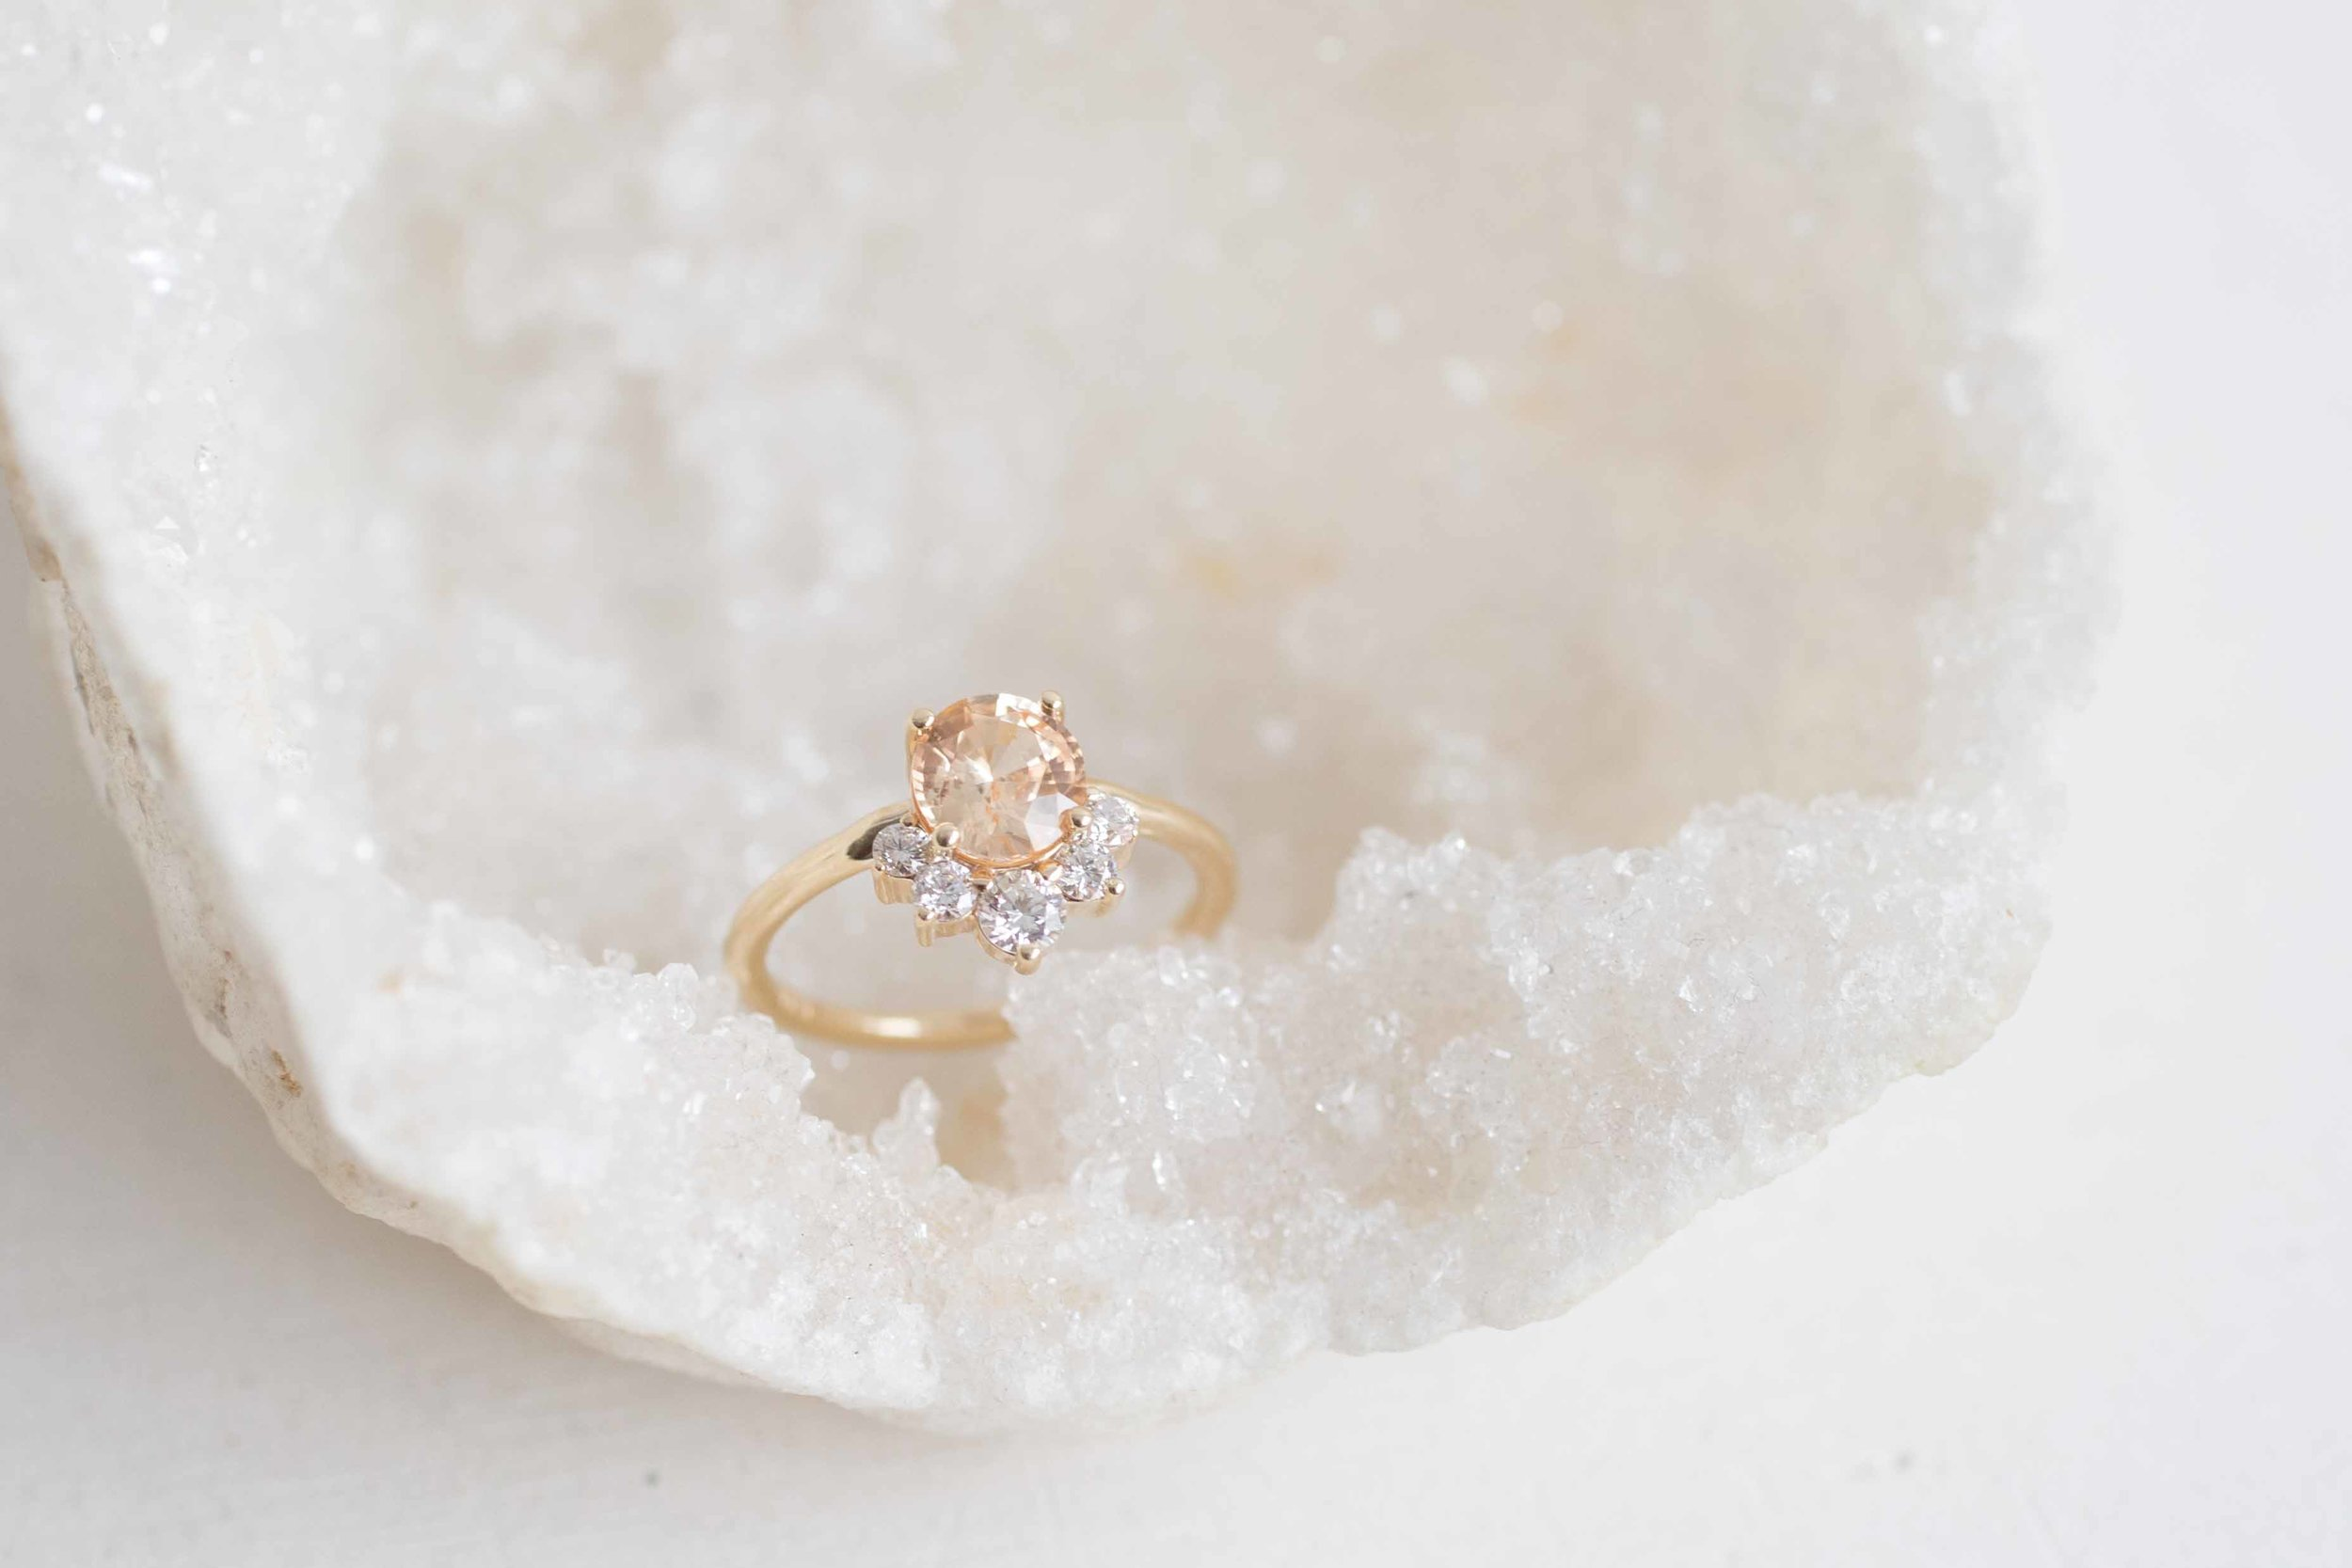 Daniel Cooper Custom Oval Apricot Sapphire + Diamond Cluster Engagament Ring-3.jpg